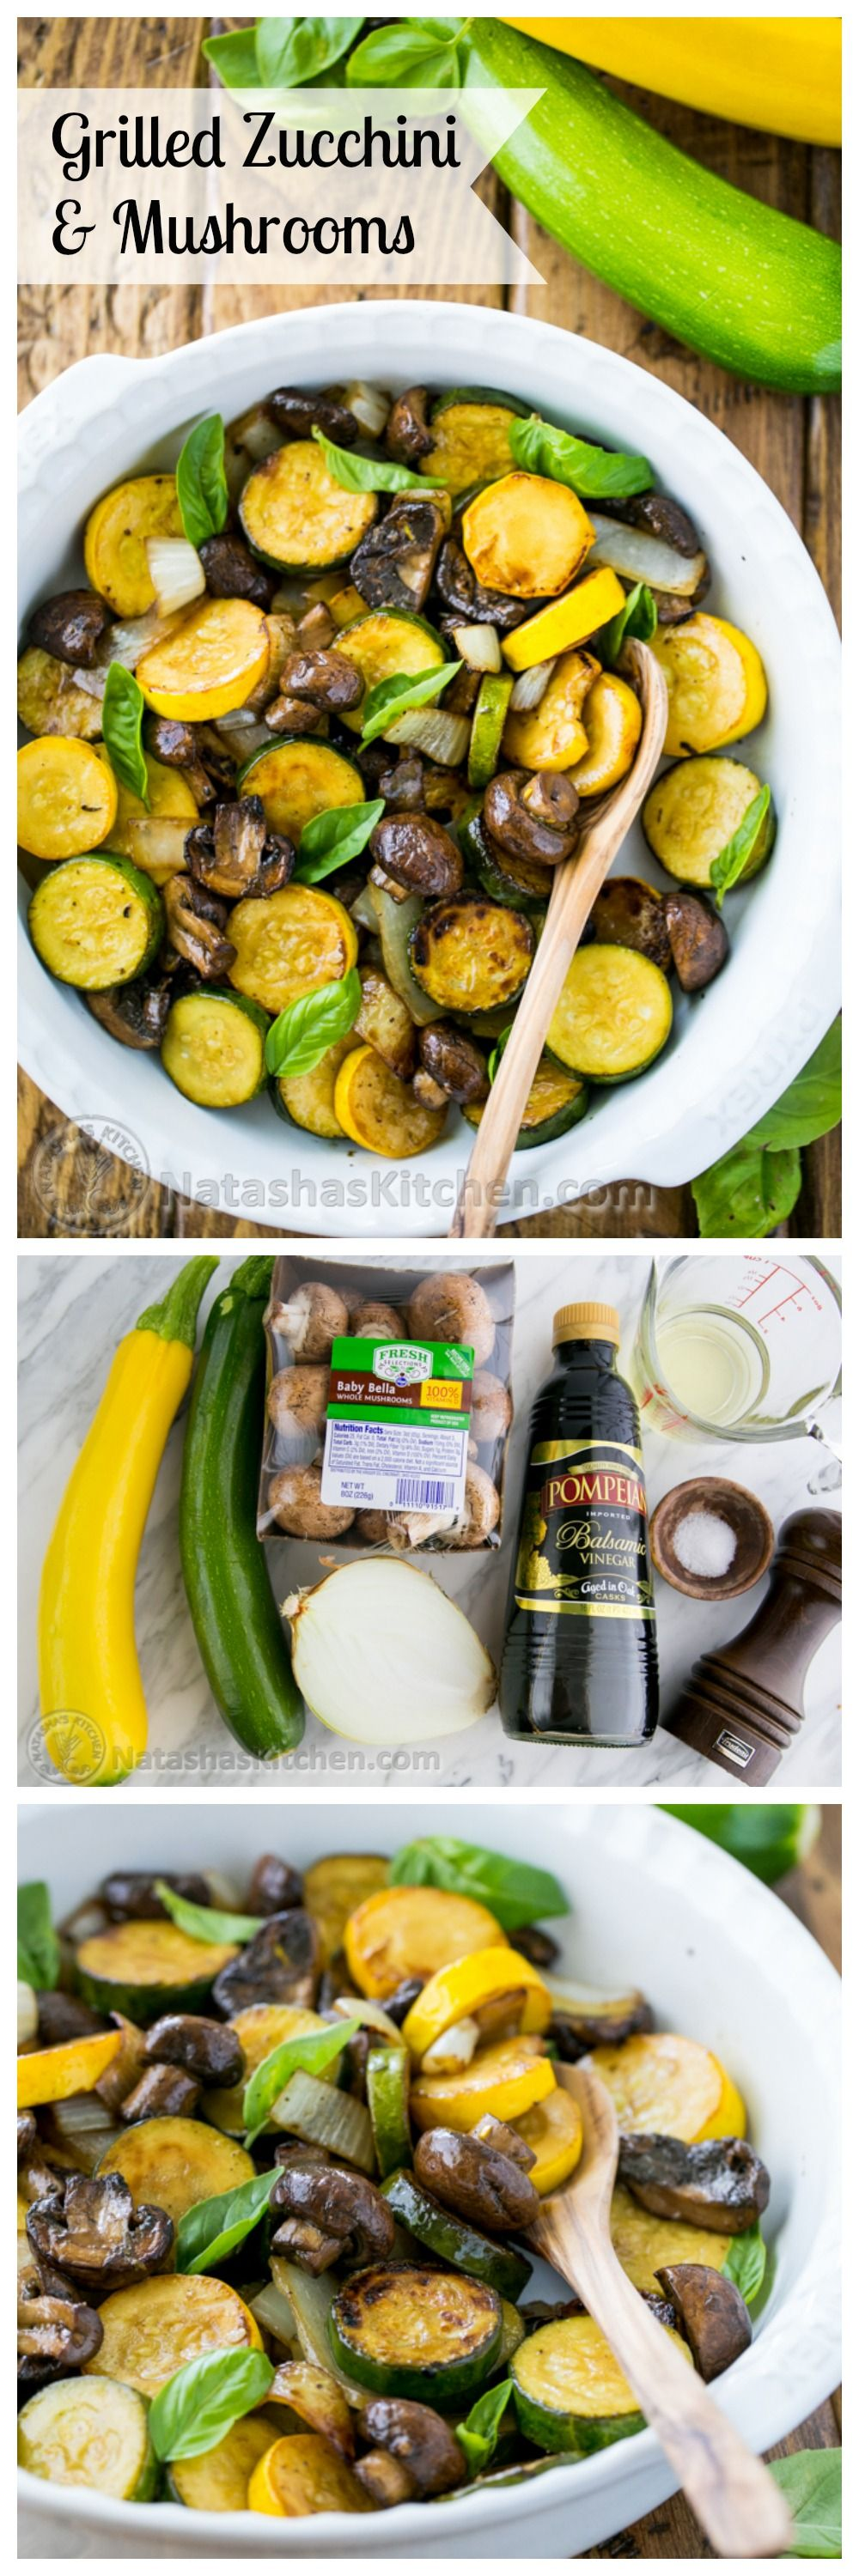 Grilled Zucchini And Mushrooms An Easy And Tasty Way To